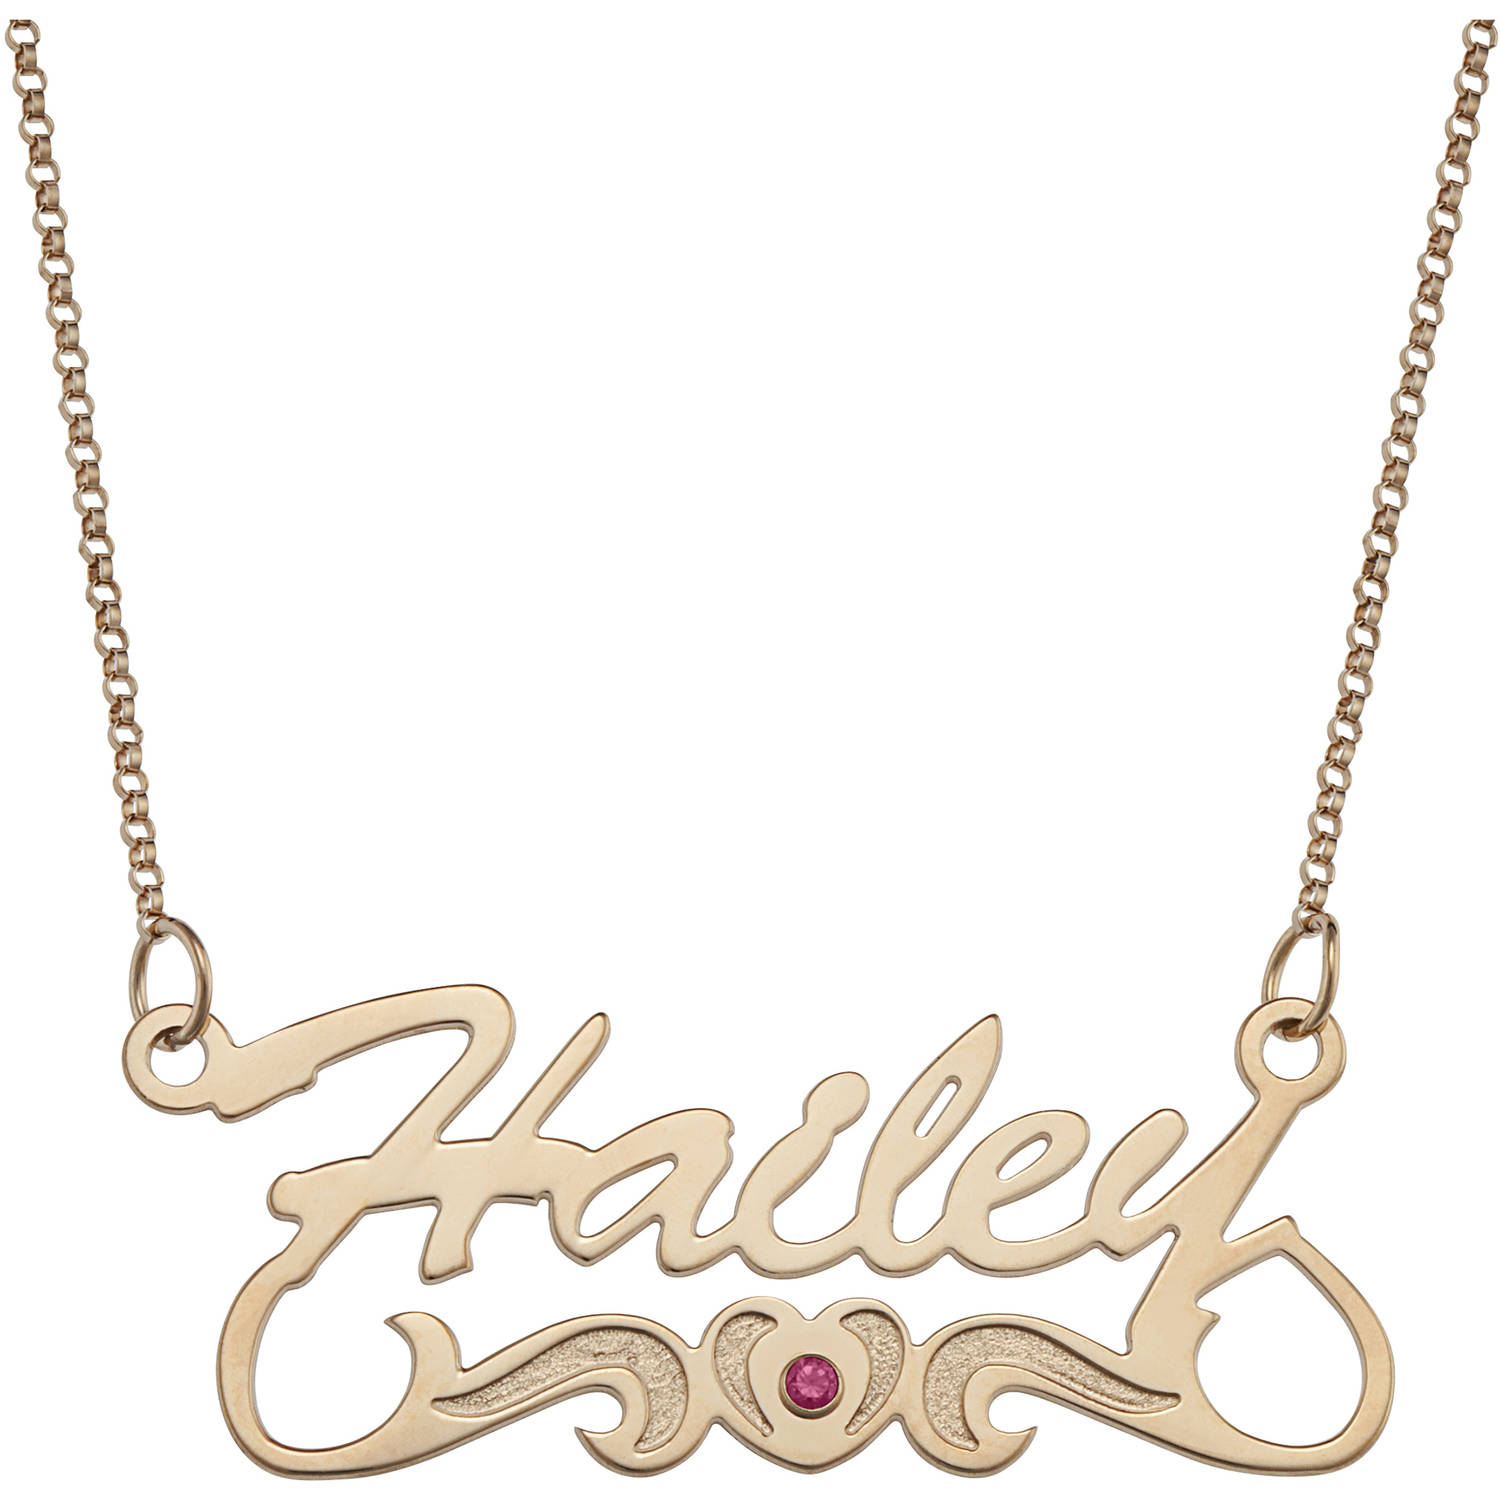 rhodium plated or gold wire chain oblacoder cute necklace name jewelry k style names cursive